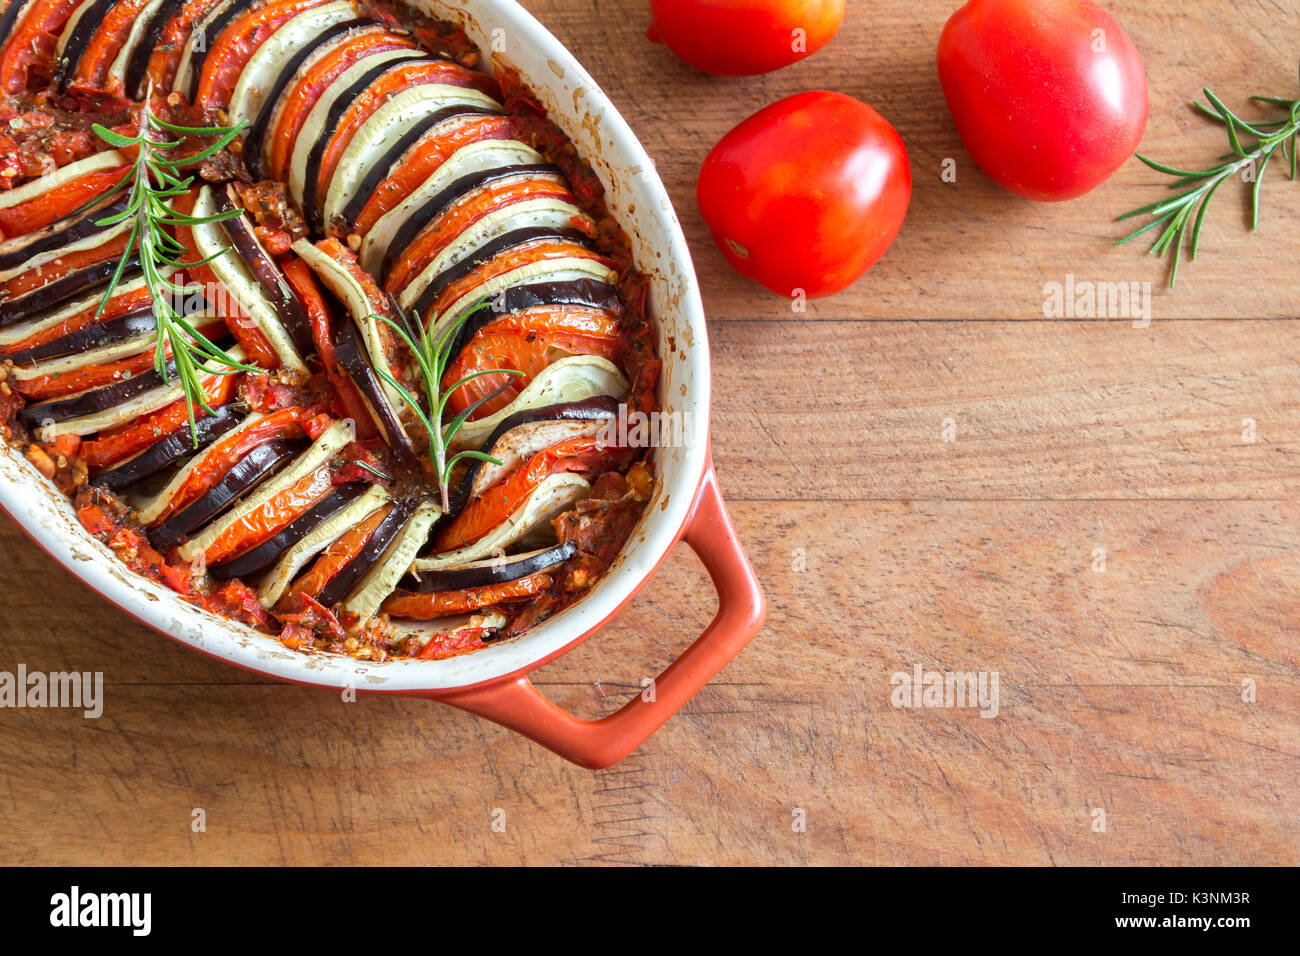 Ratatouille - traditional French Provencal vegetable dish cooked in oven. Diet vegetarian vegan food - Ratatouille casserole. - Stock Image